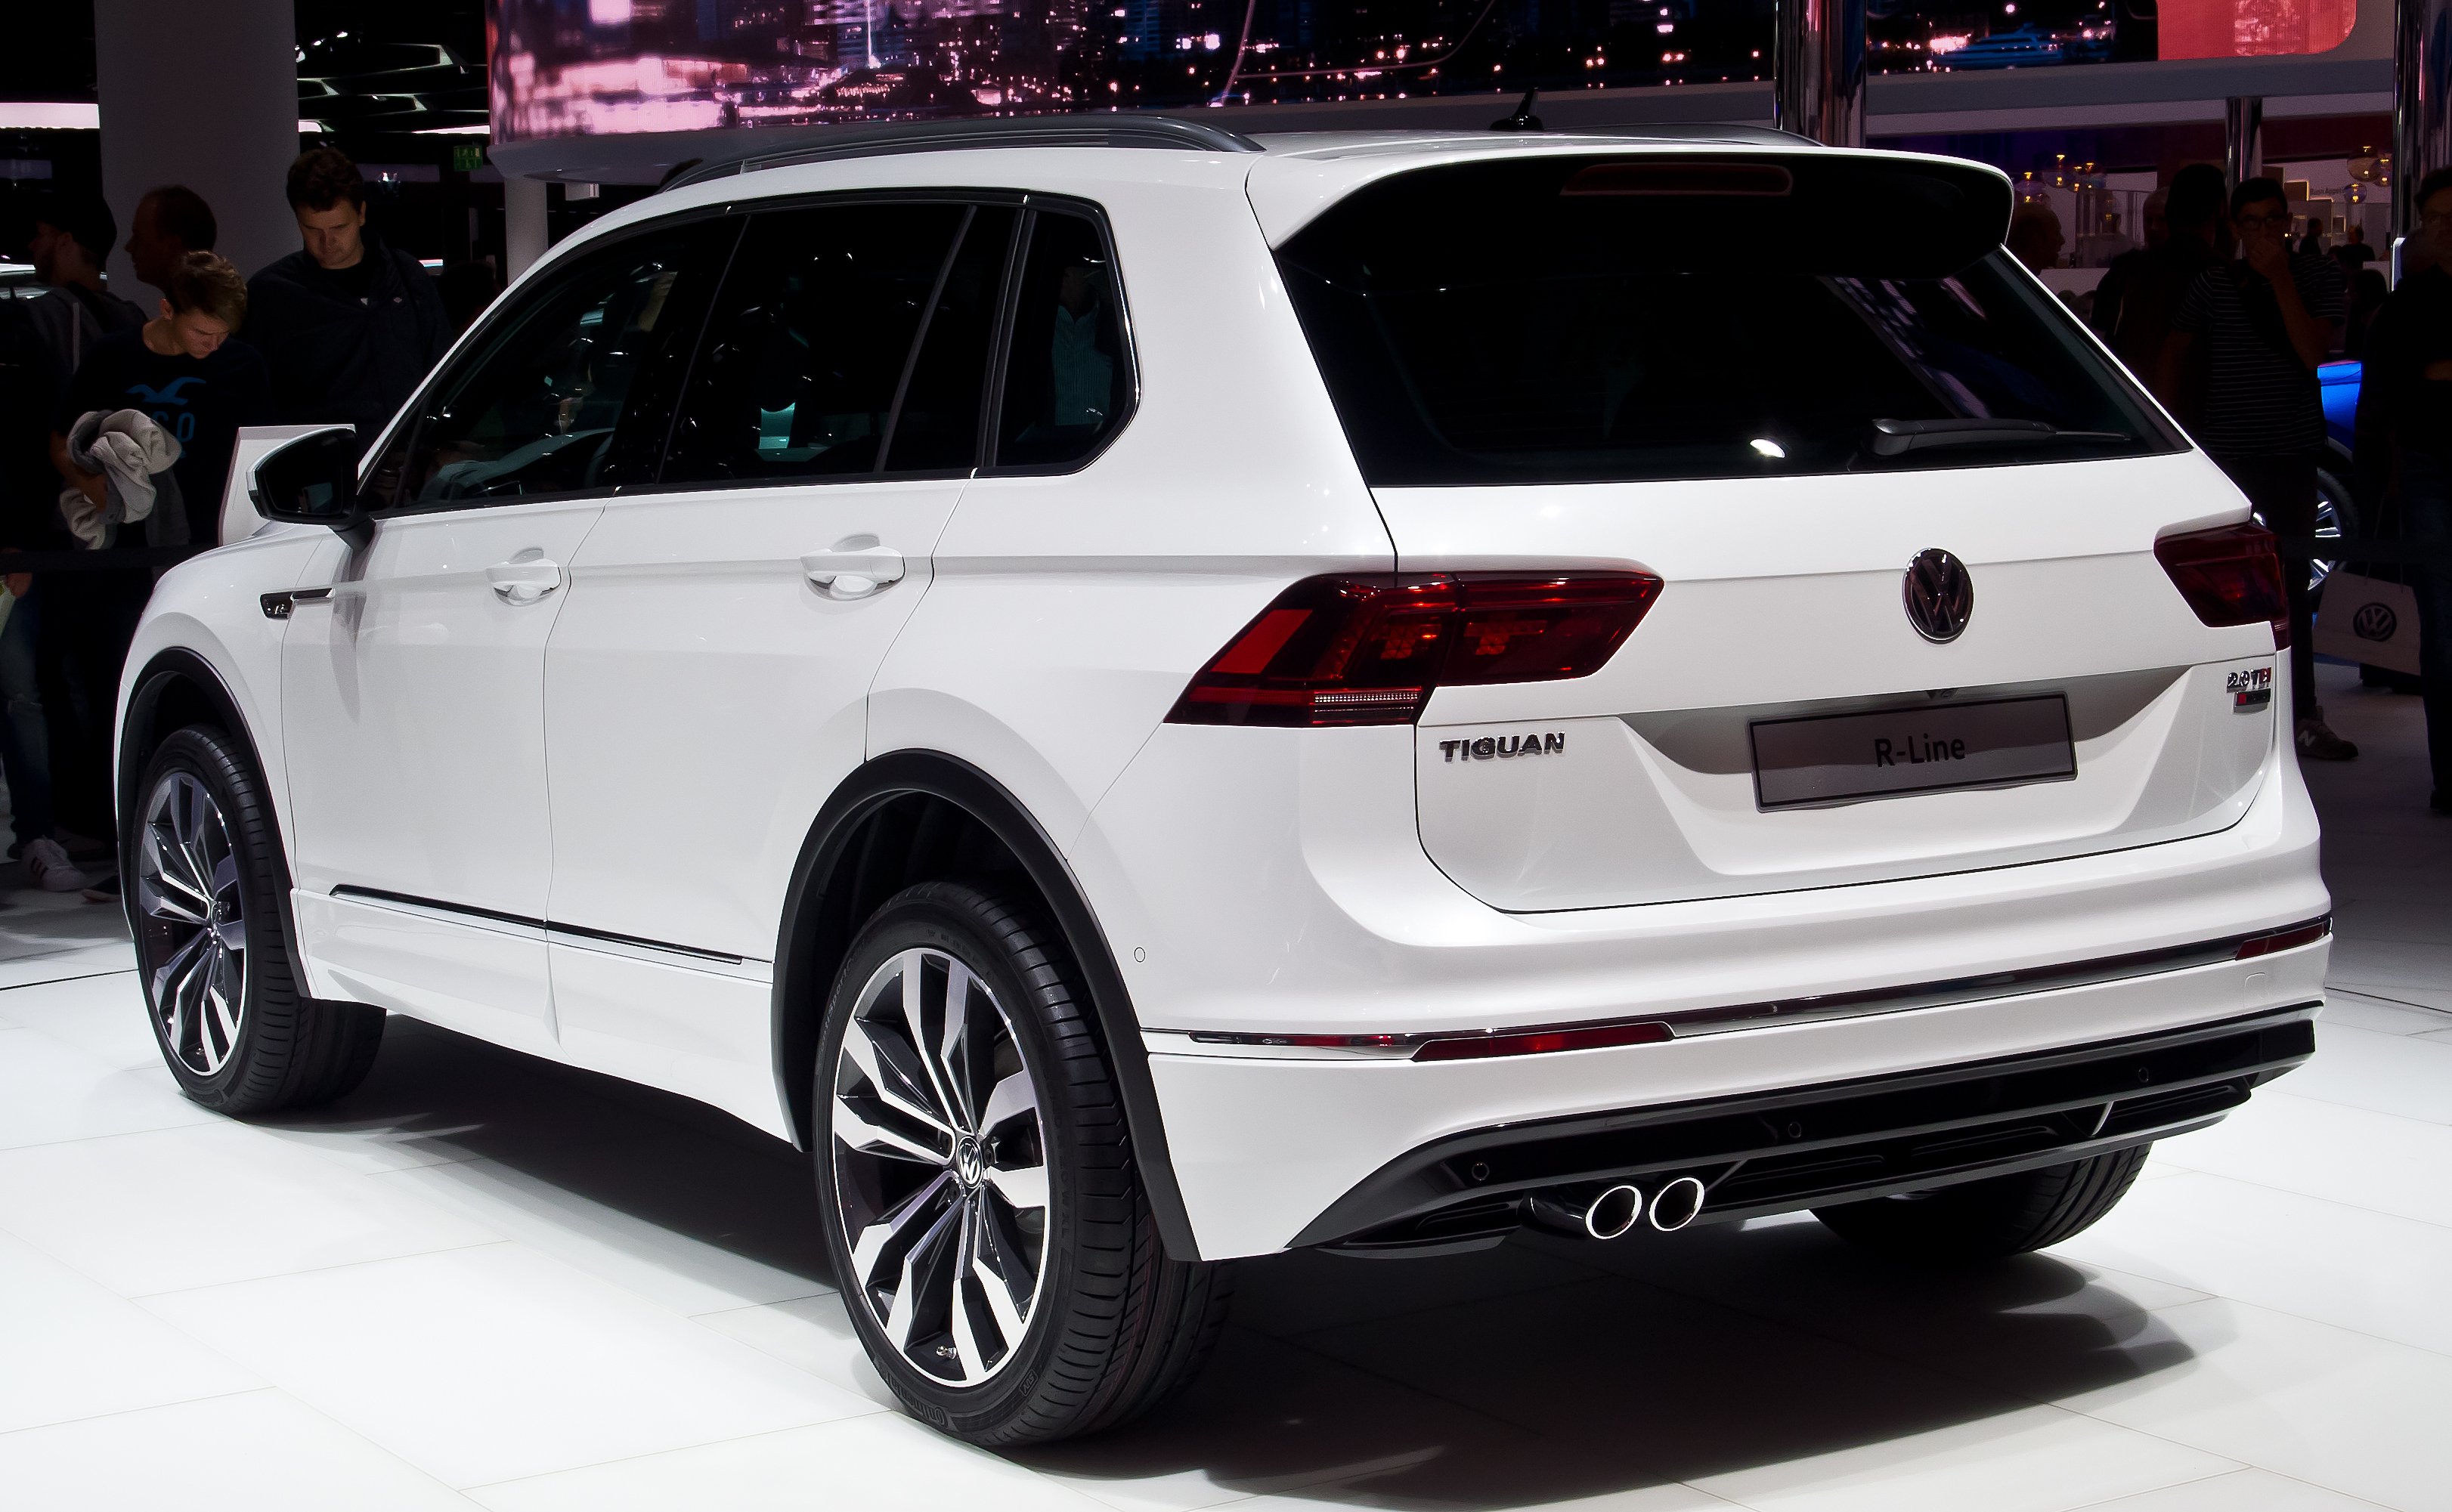 file vw tiguan 2 0 tdi 4motion r line ii heckansicht 1 19 september 2015. Black Bedroom Furniture Sets. Home Design Ideas